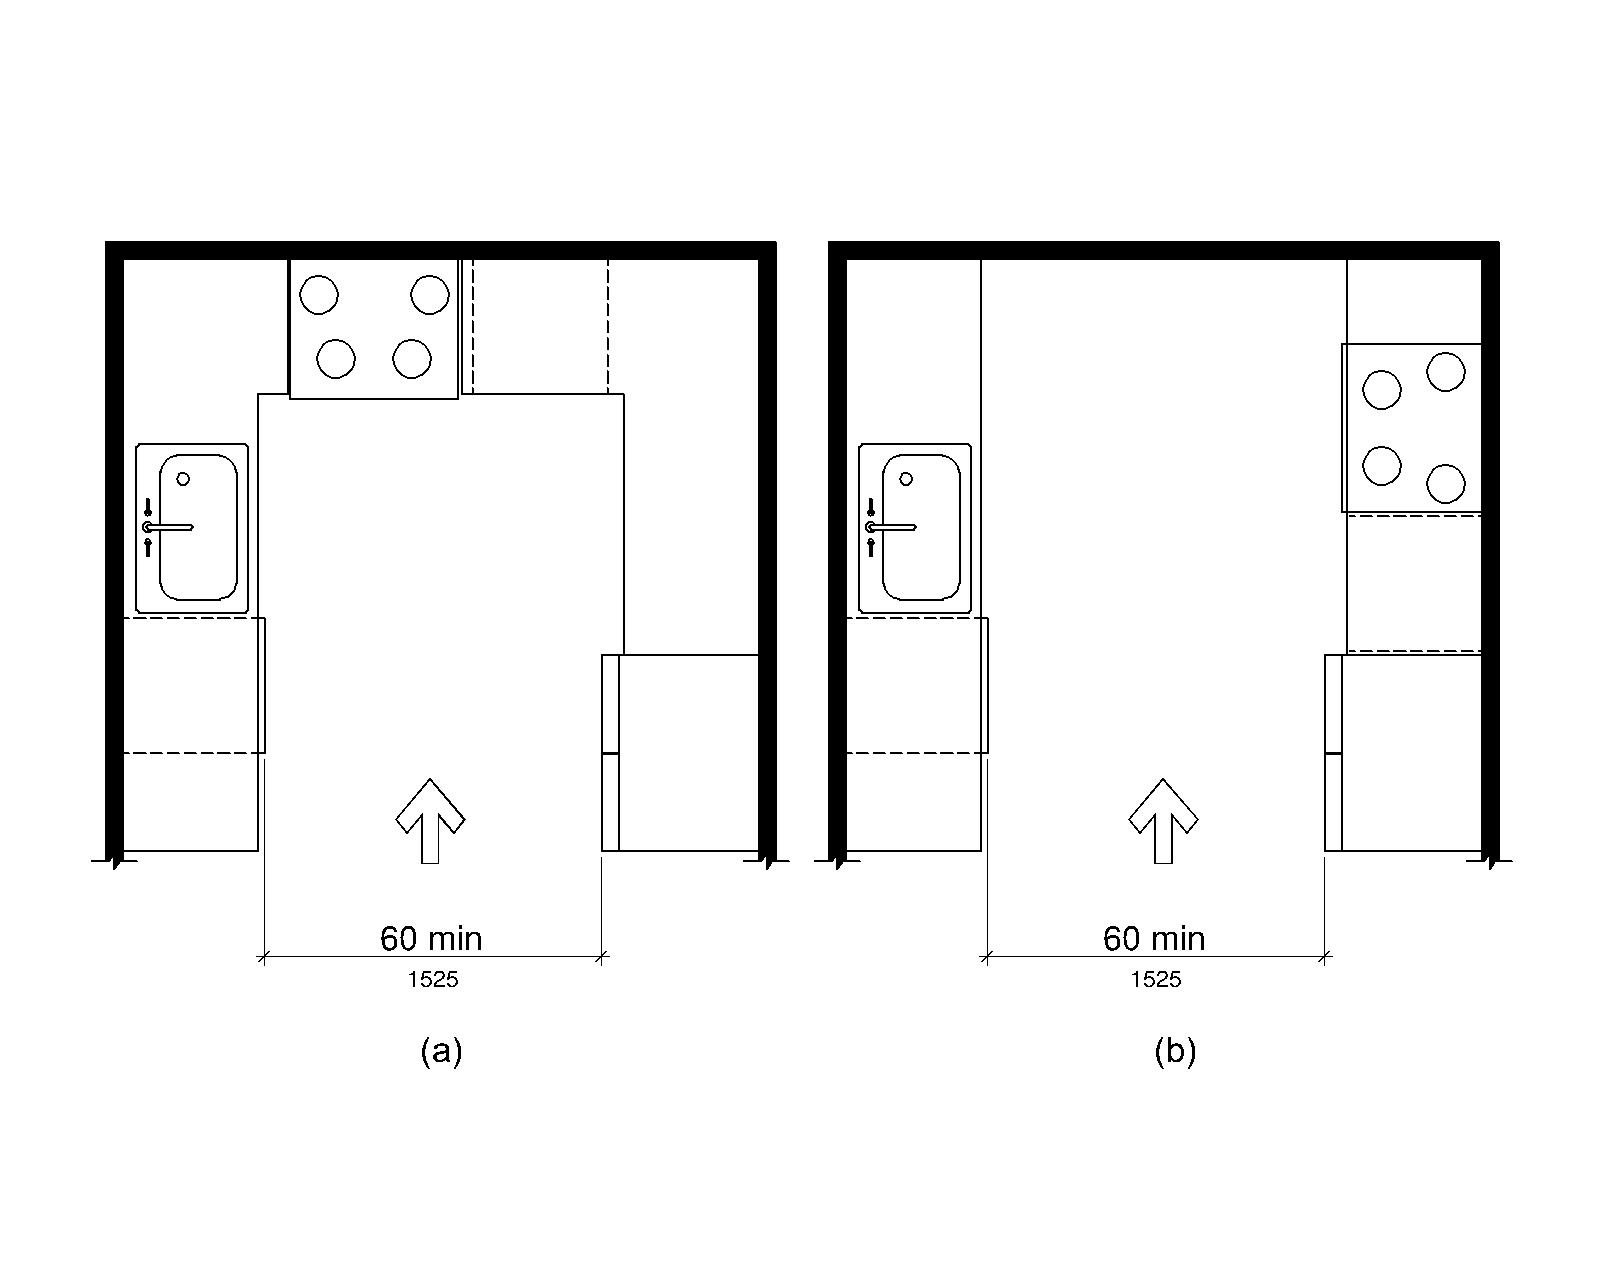 Figure (a) is a plan view of a galley with appliances and cabinets on three sides.Figure (b) is a plan view of a galley with appliances and cabinets on two opposites with a wall at the rear.The width of the galley entry opening is 60 inches (1525 mm) minimum.